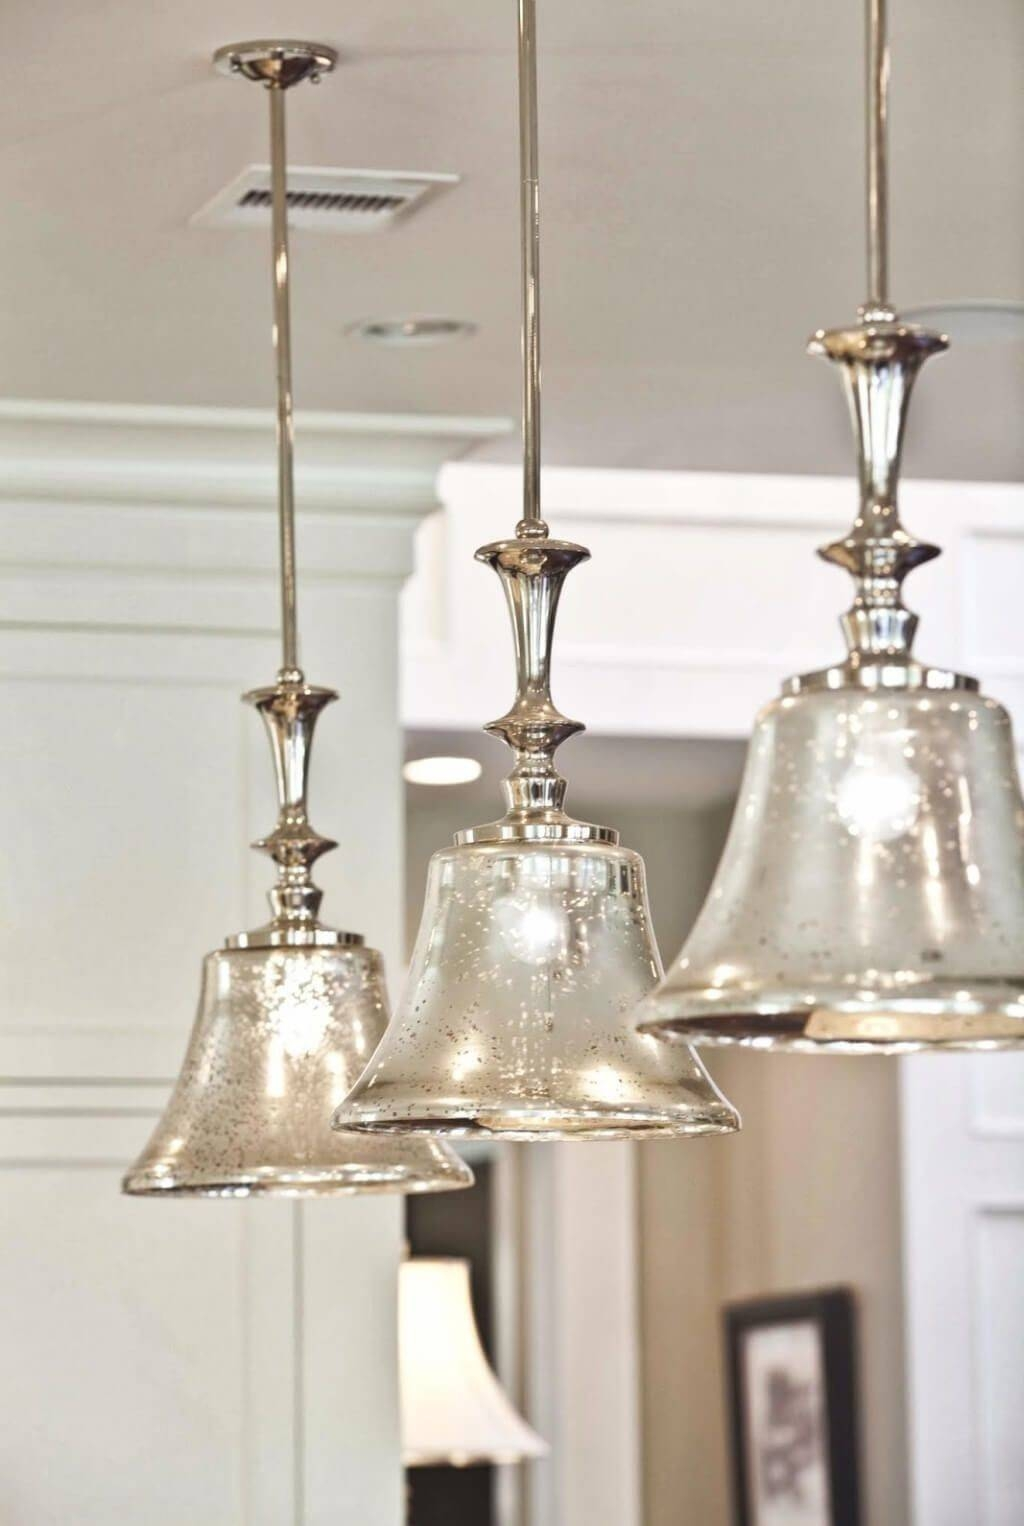 Popular Photo of Crackle Glass Pendant Lights